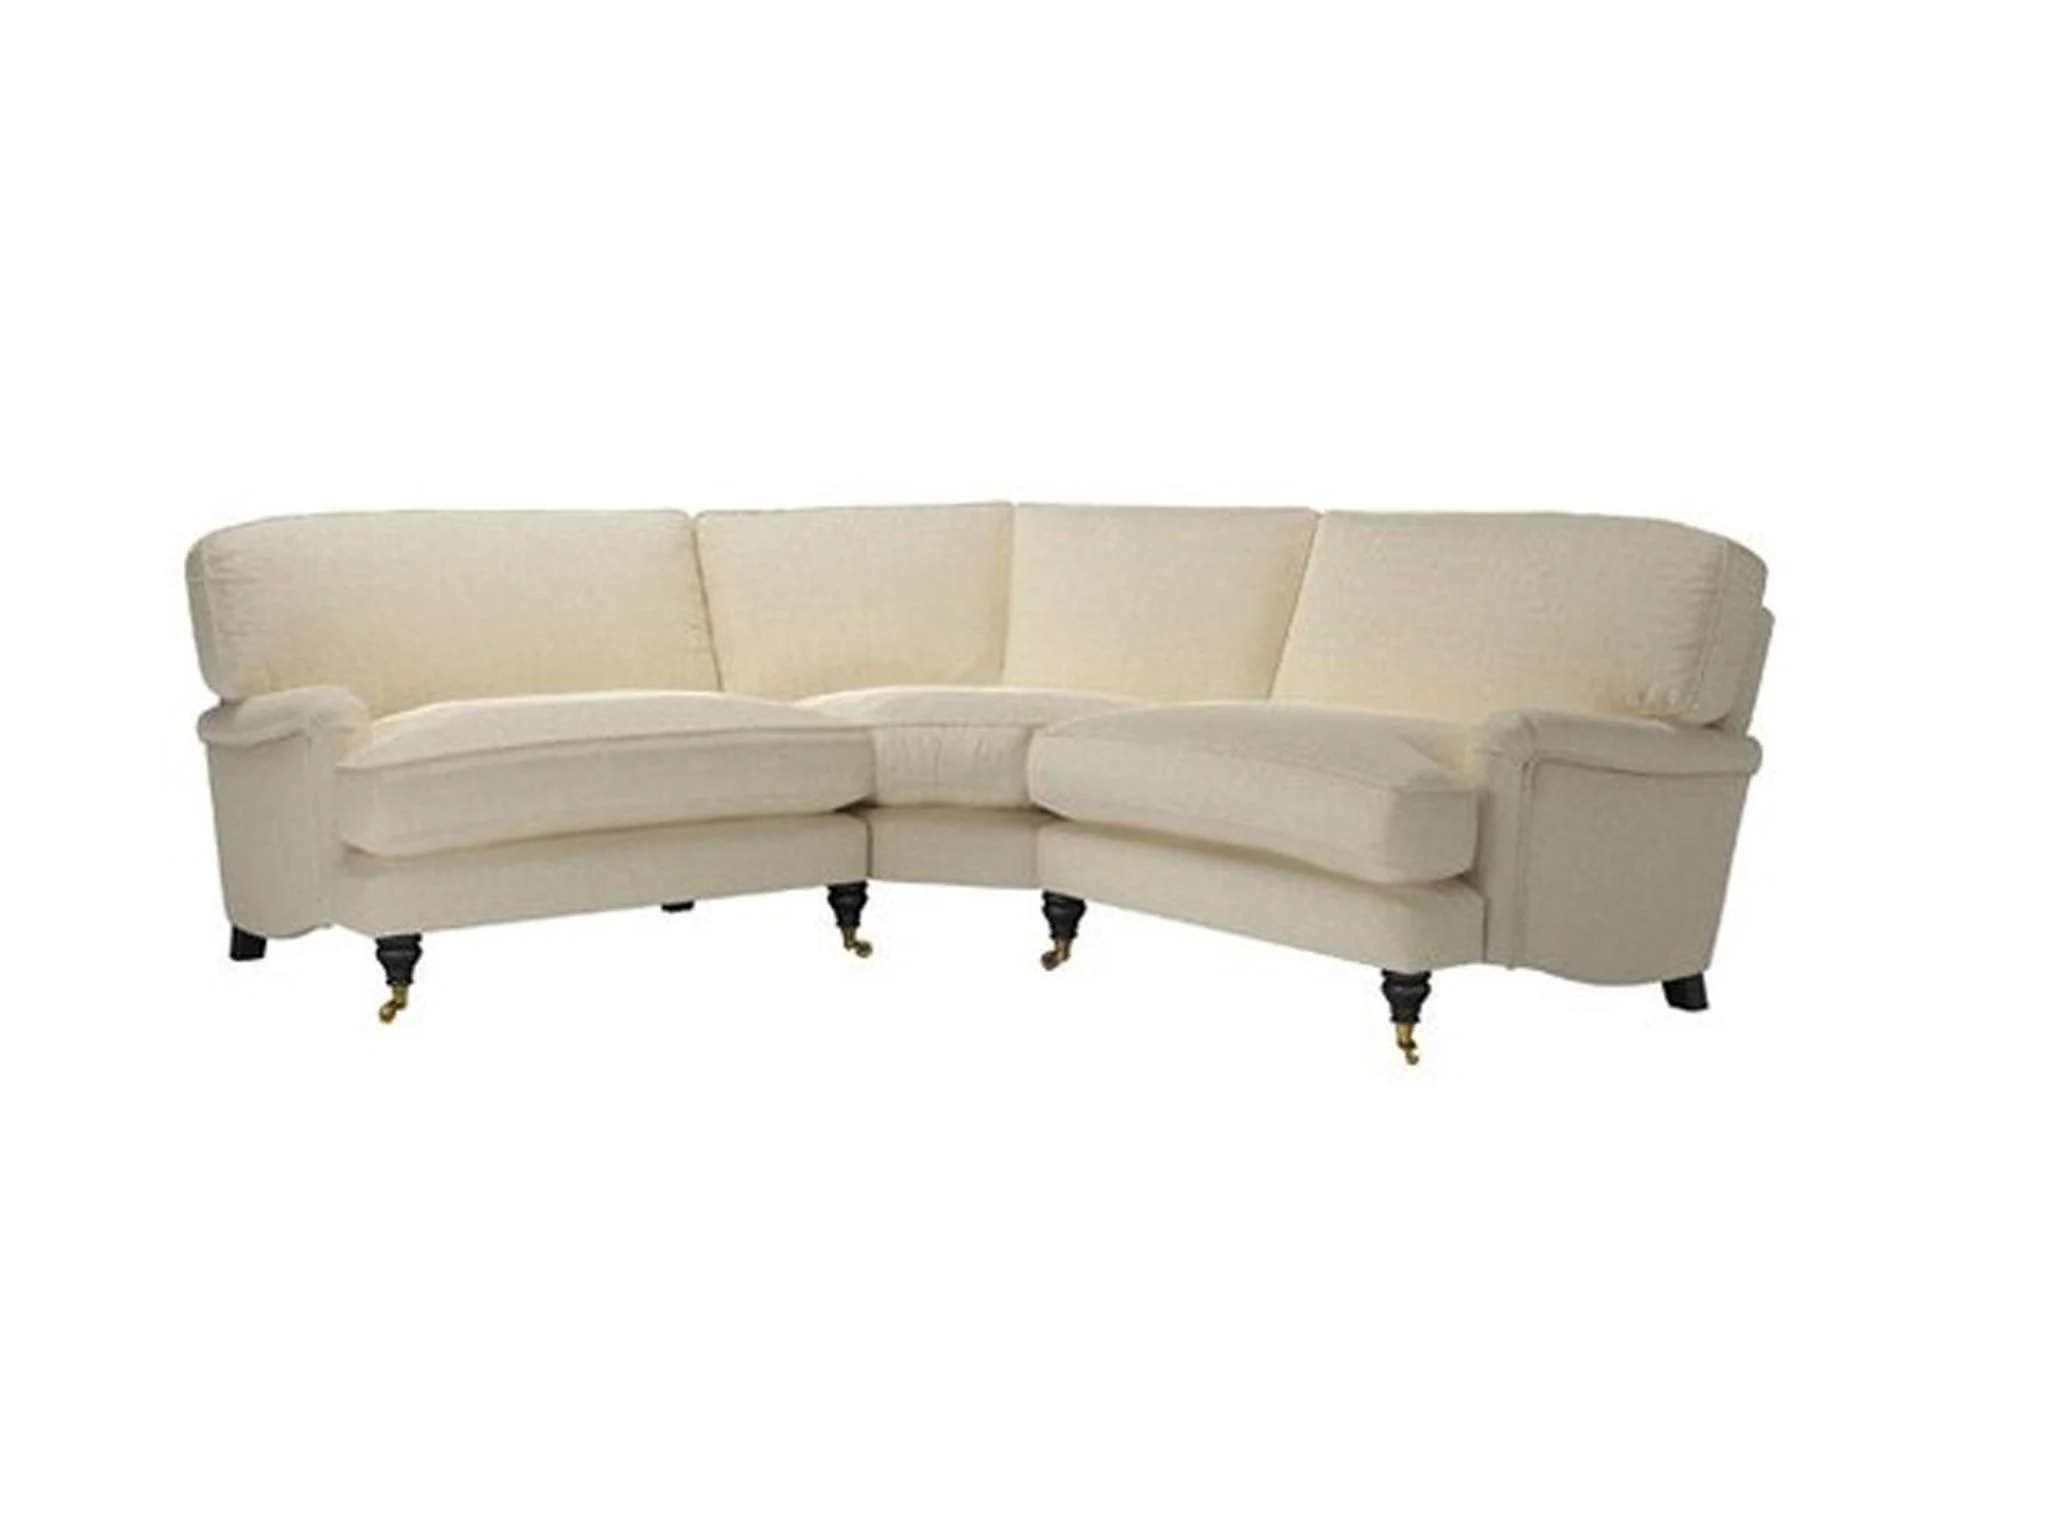 htl sofa stockists uk 3 seater power recliner leather 11 best corner sofas the independent usually suit modern angular shapes rather than traditional styles but bluebell is a good example of combination done elegantly